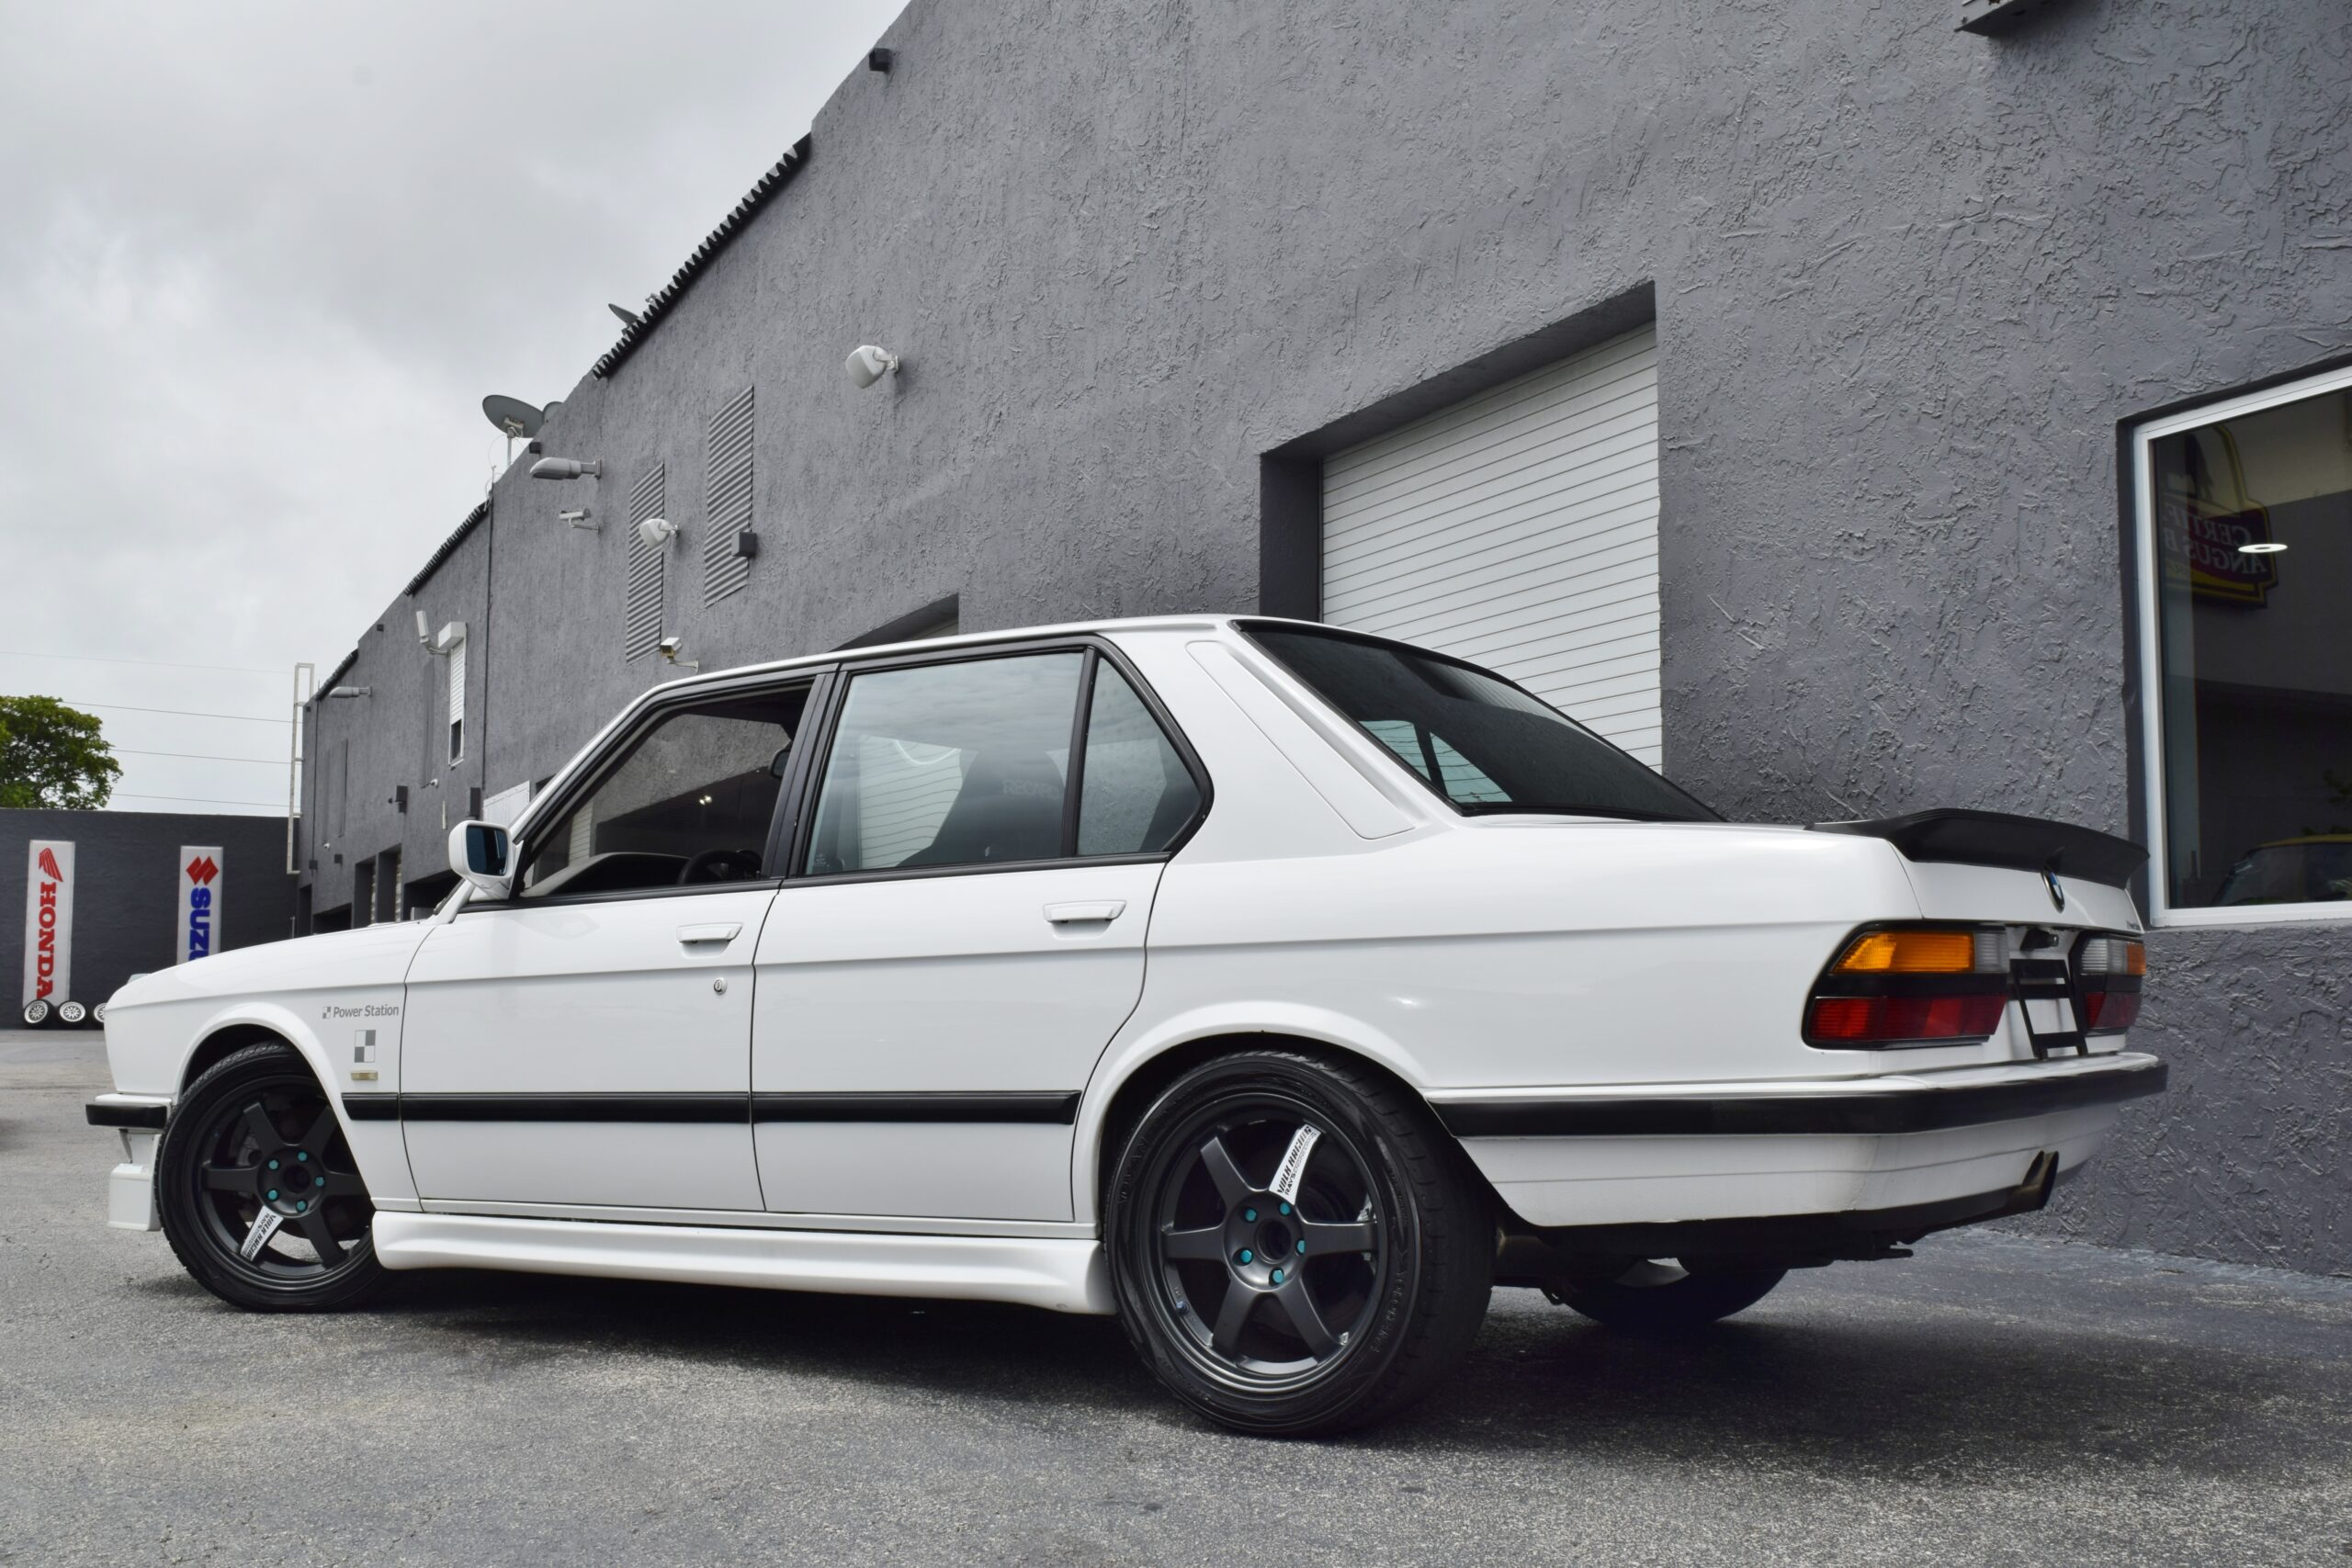 1986 BMW 5-Series E28 HKS TWIN TURBO Built M20 HKS Twin Turbo-5 Speed-MOTEC-Bilstein Suspension-Recaro Seats-Slicktop